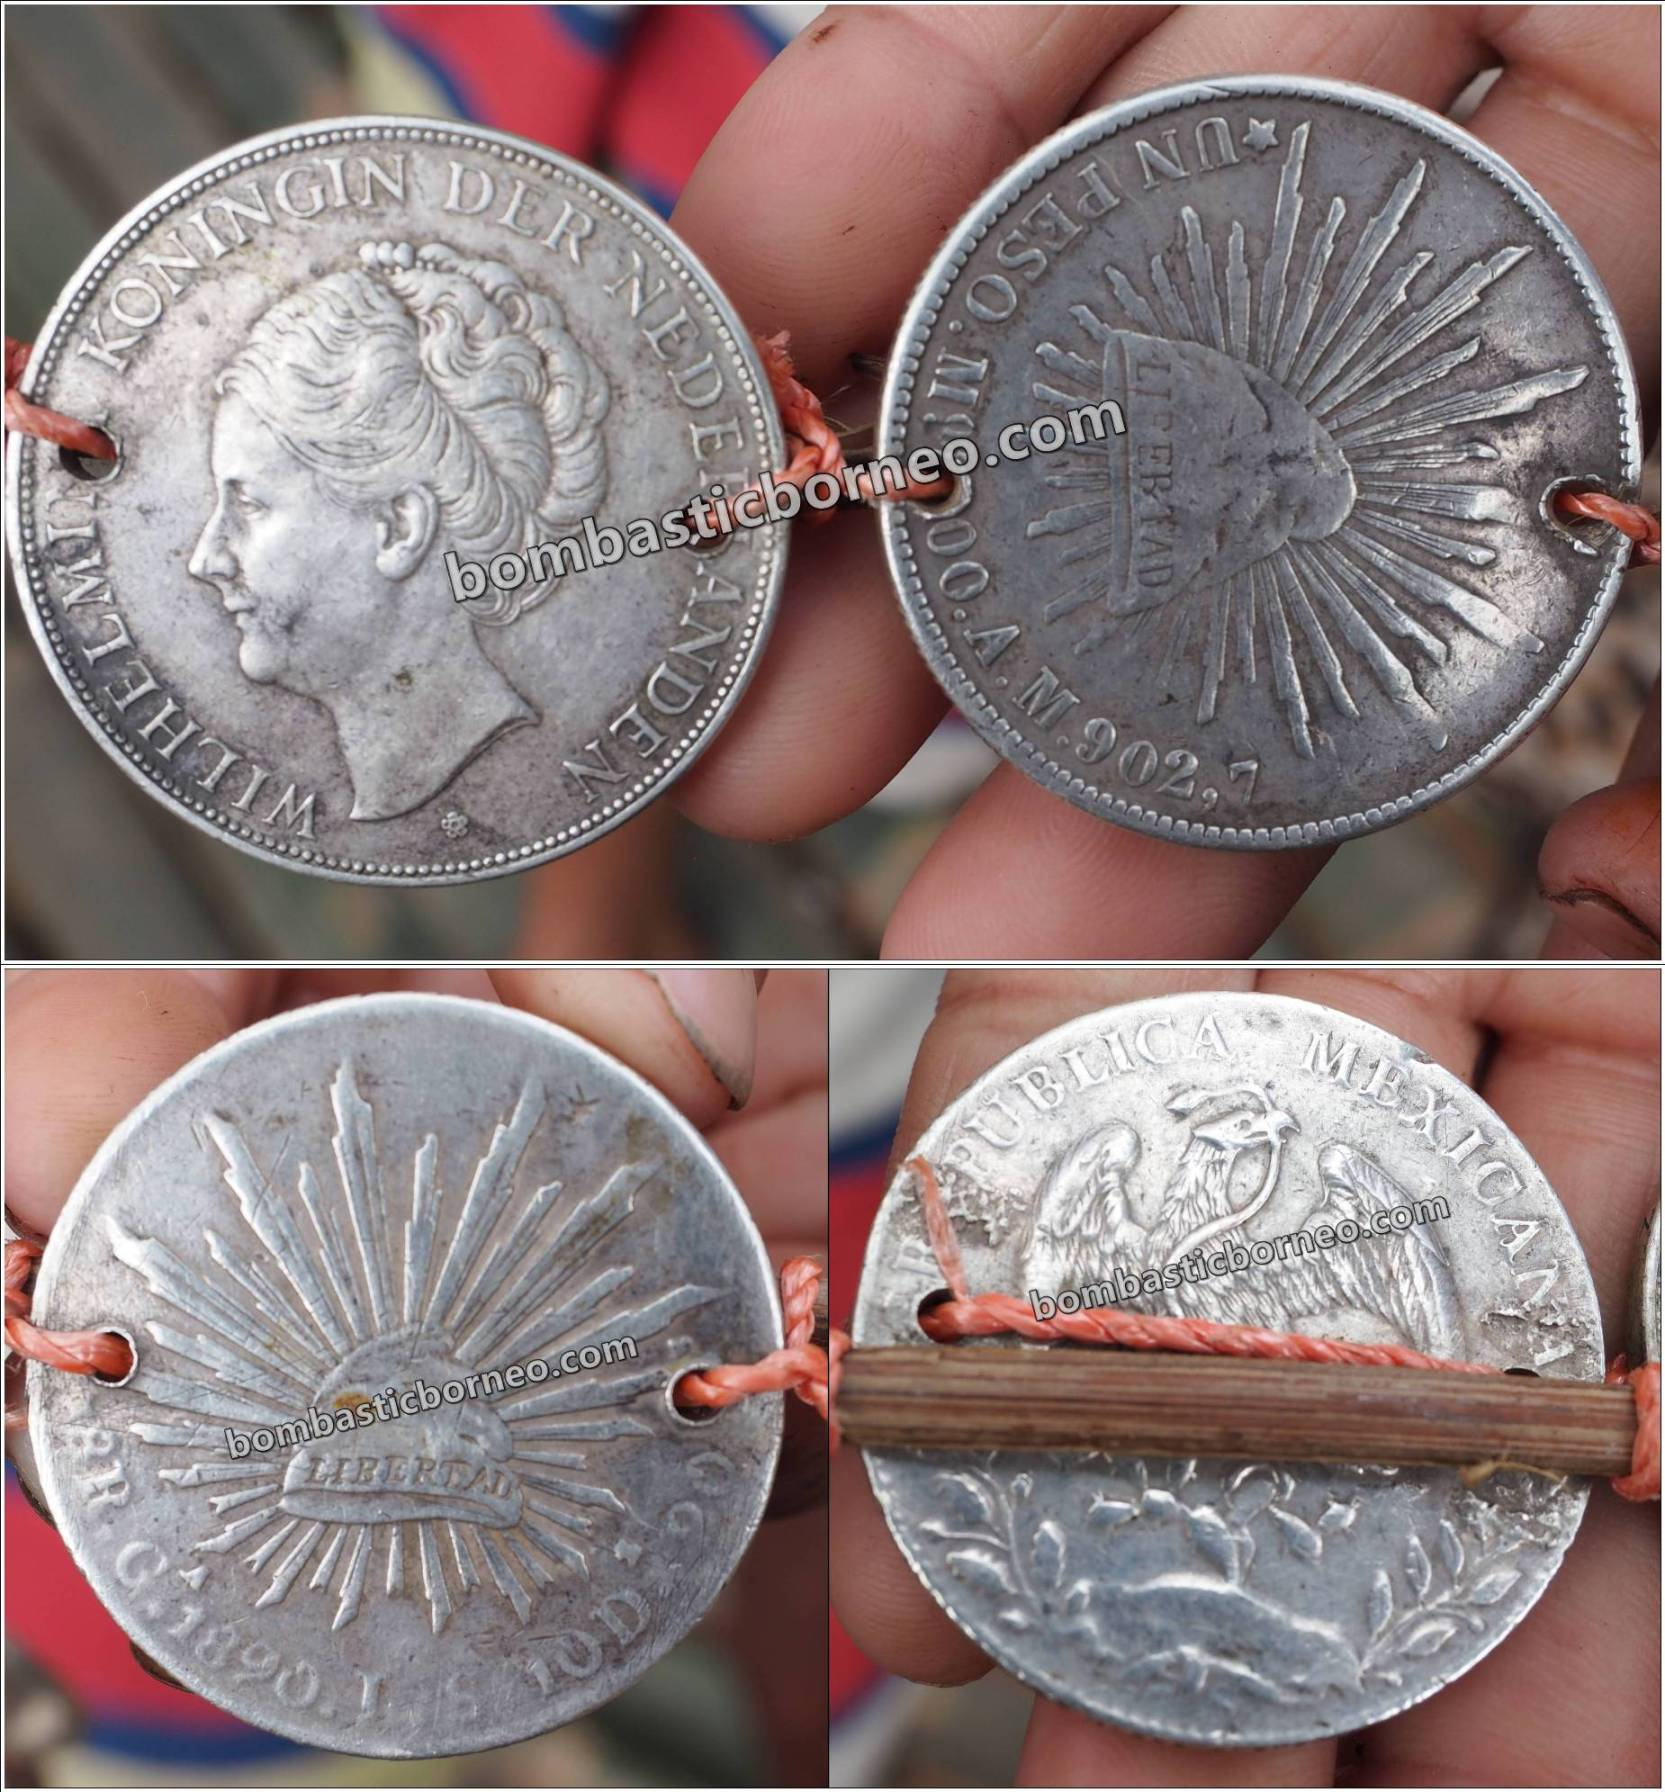 antique coin, ancient, Antik Koin, Netherlands, Belanda, Dutch, authentic, traditional, Tourism, travel guide, trans border, Borneo, Indonesia, Bengkayang, West Kalimantan, Holland